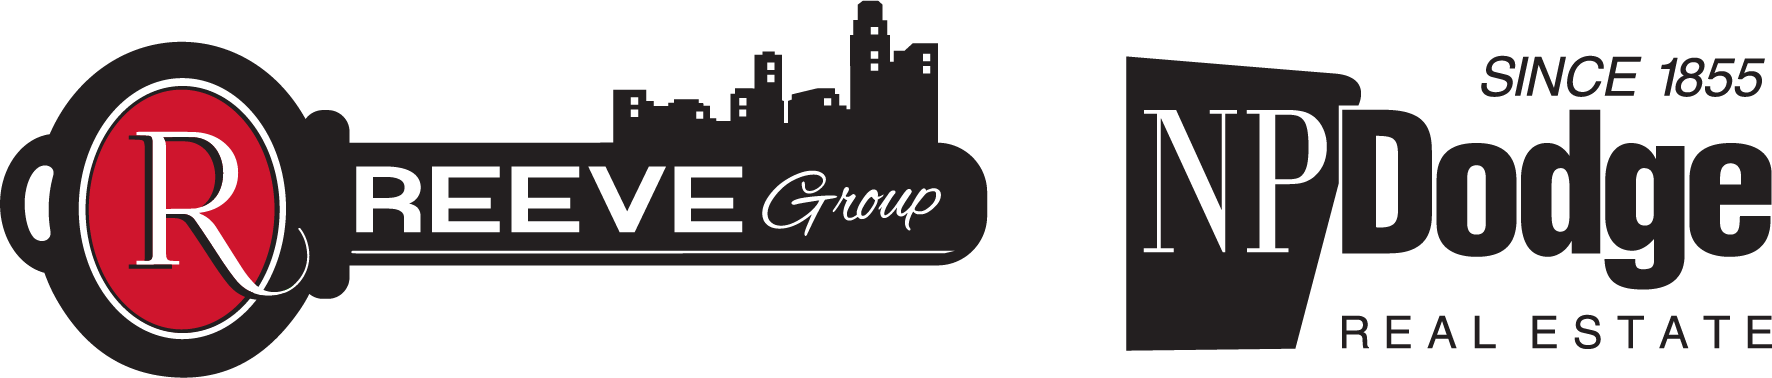 The Reeve Group